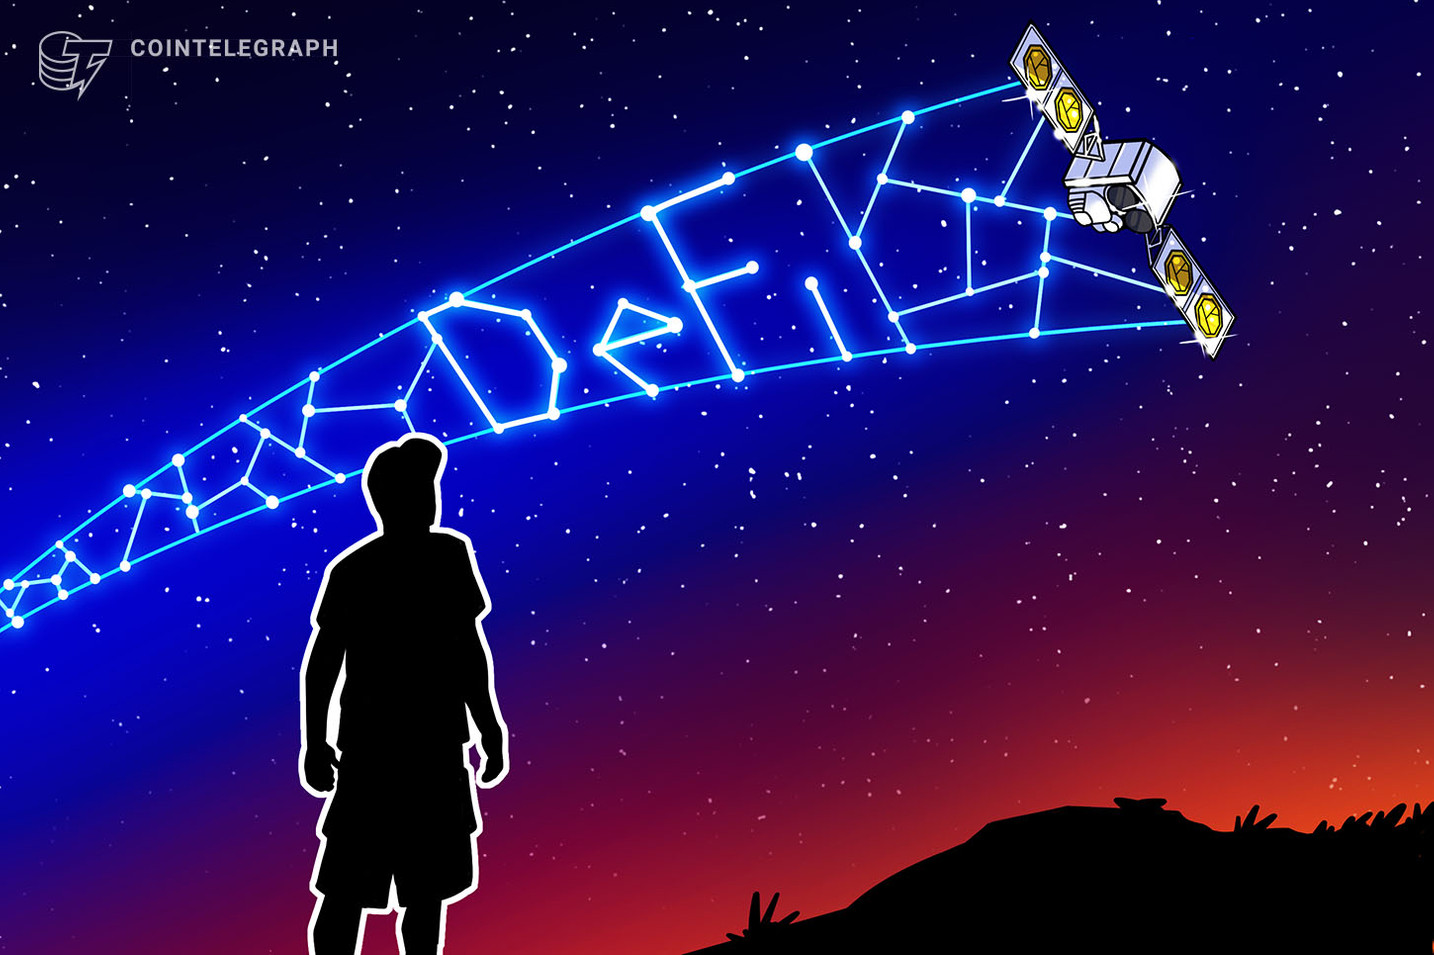 Altcoins and DeFi tokens breakout as Bitcoin price nears a key resistance